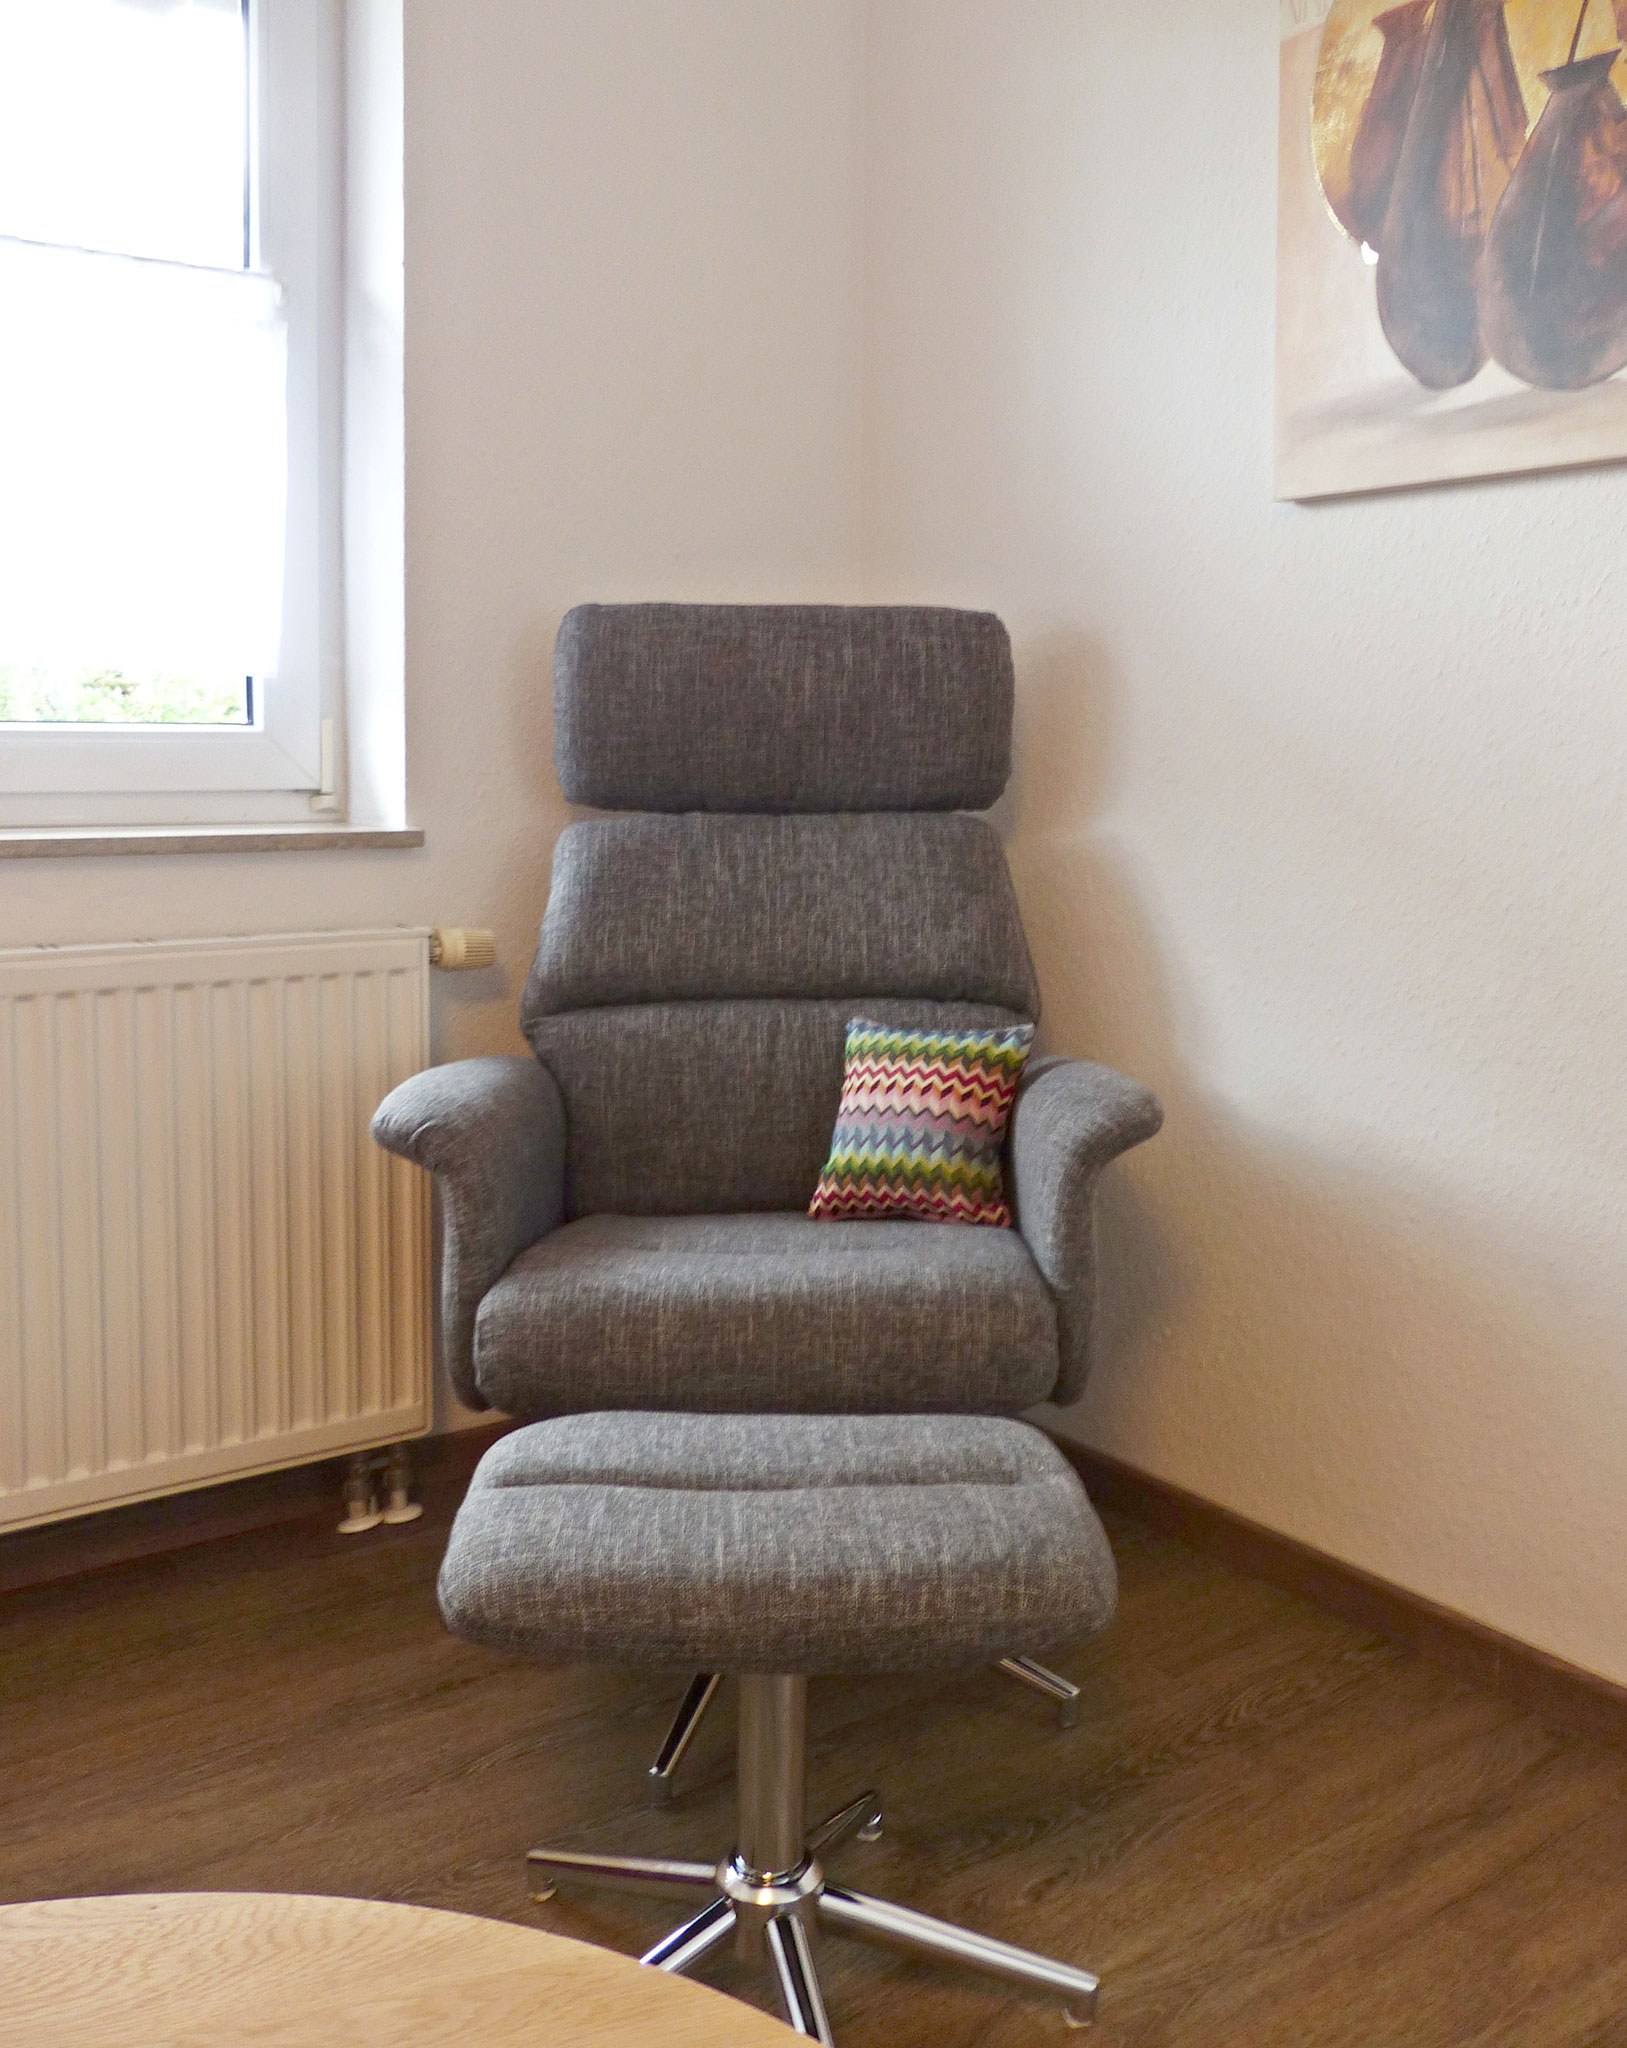 bequemer Relaxsessel